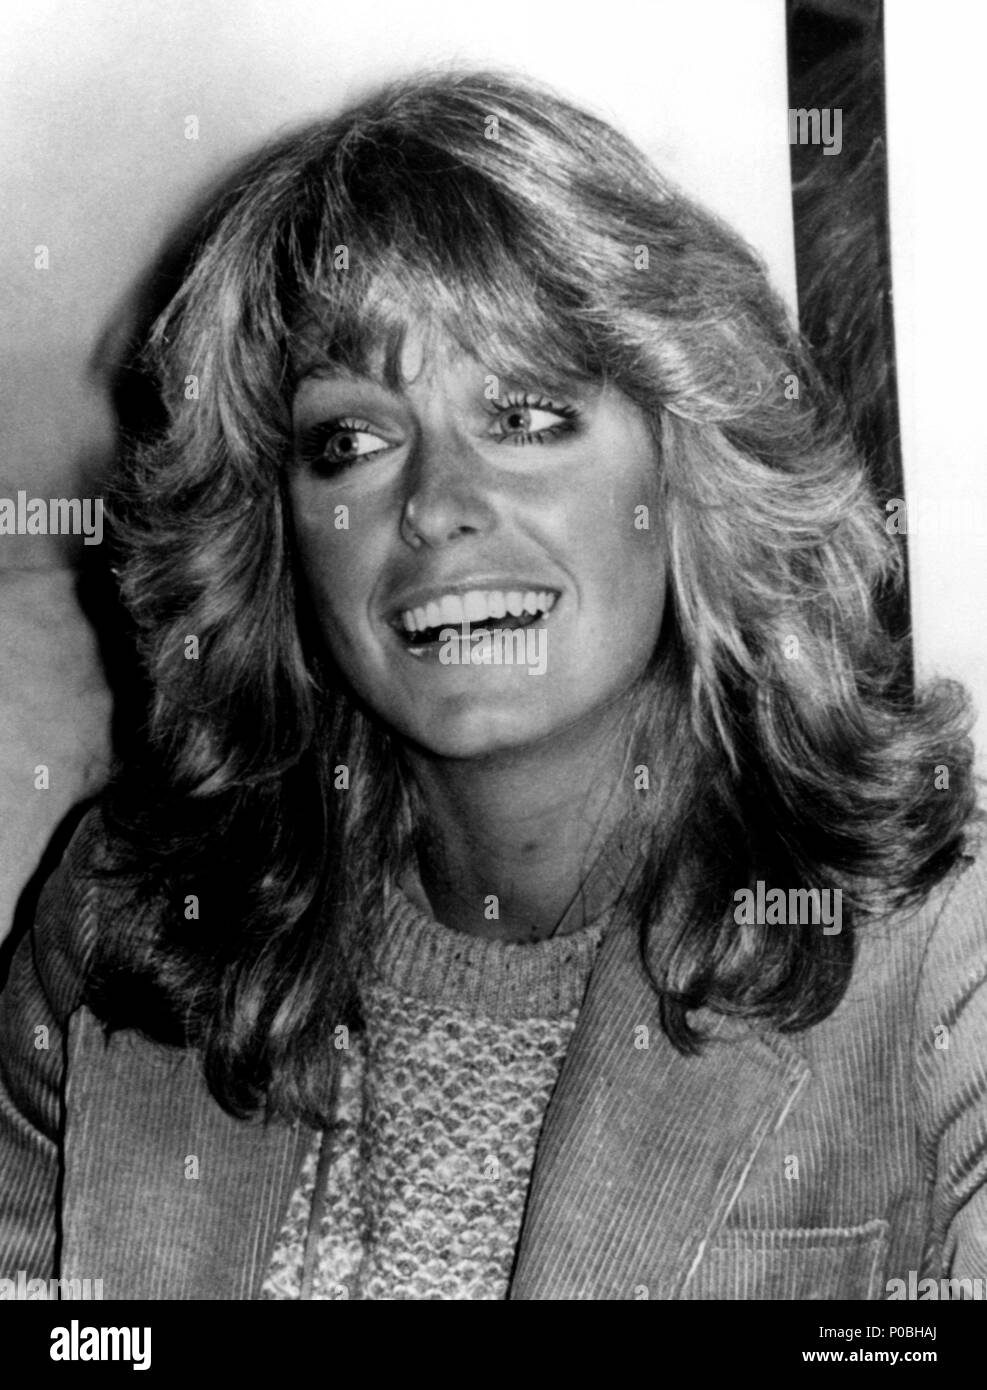 Stars: FARRAH FAWCETT Stock Photo: 206779514 - Alamy